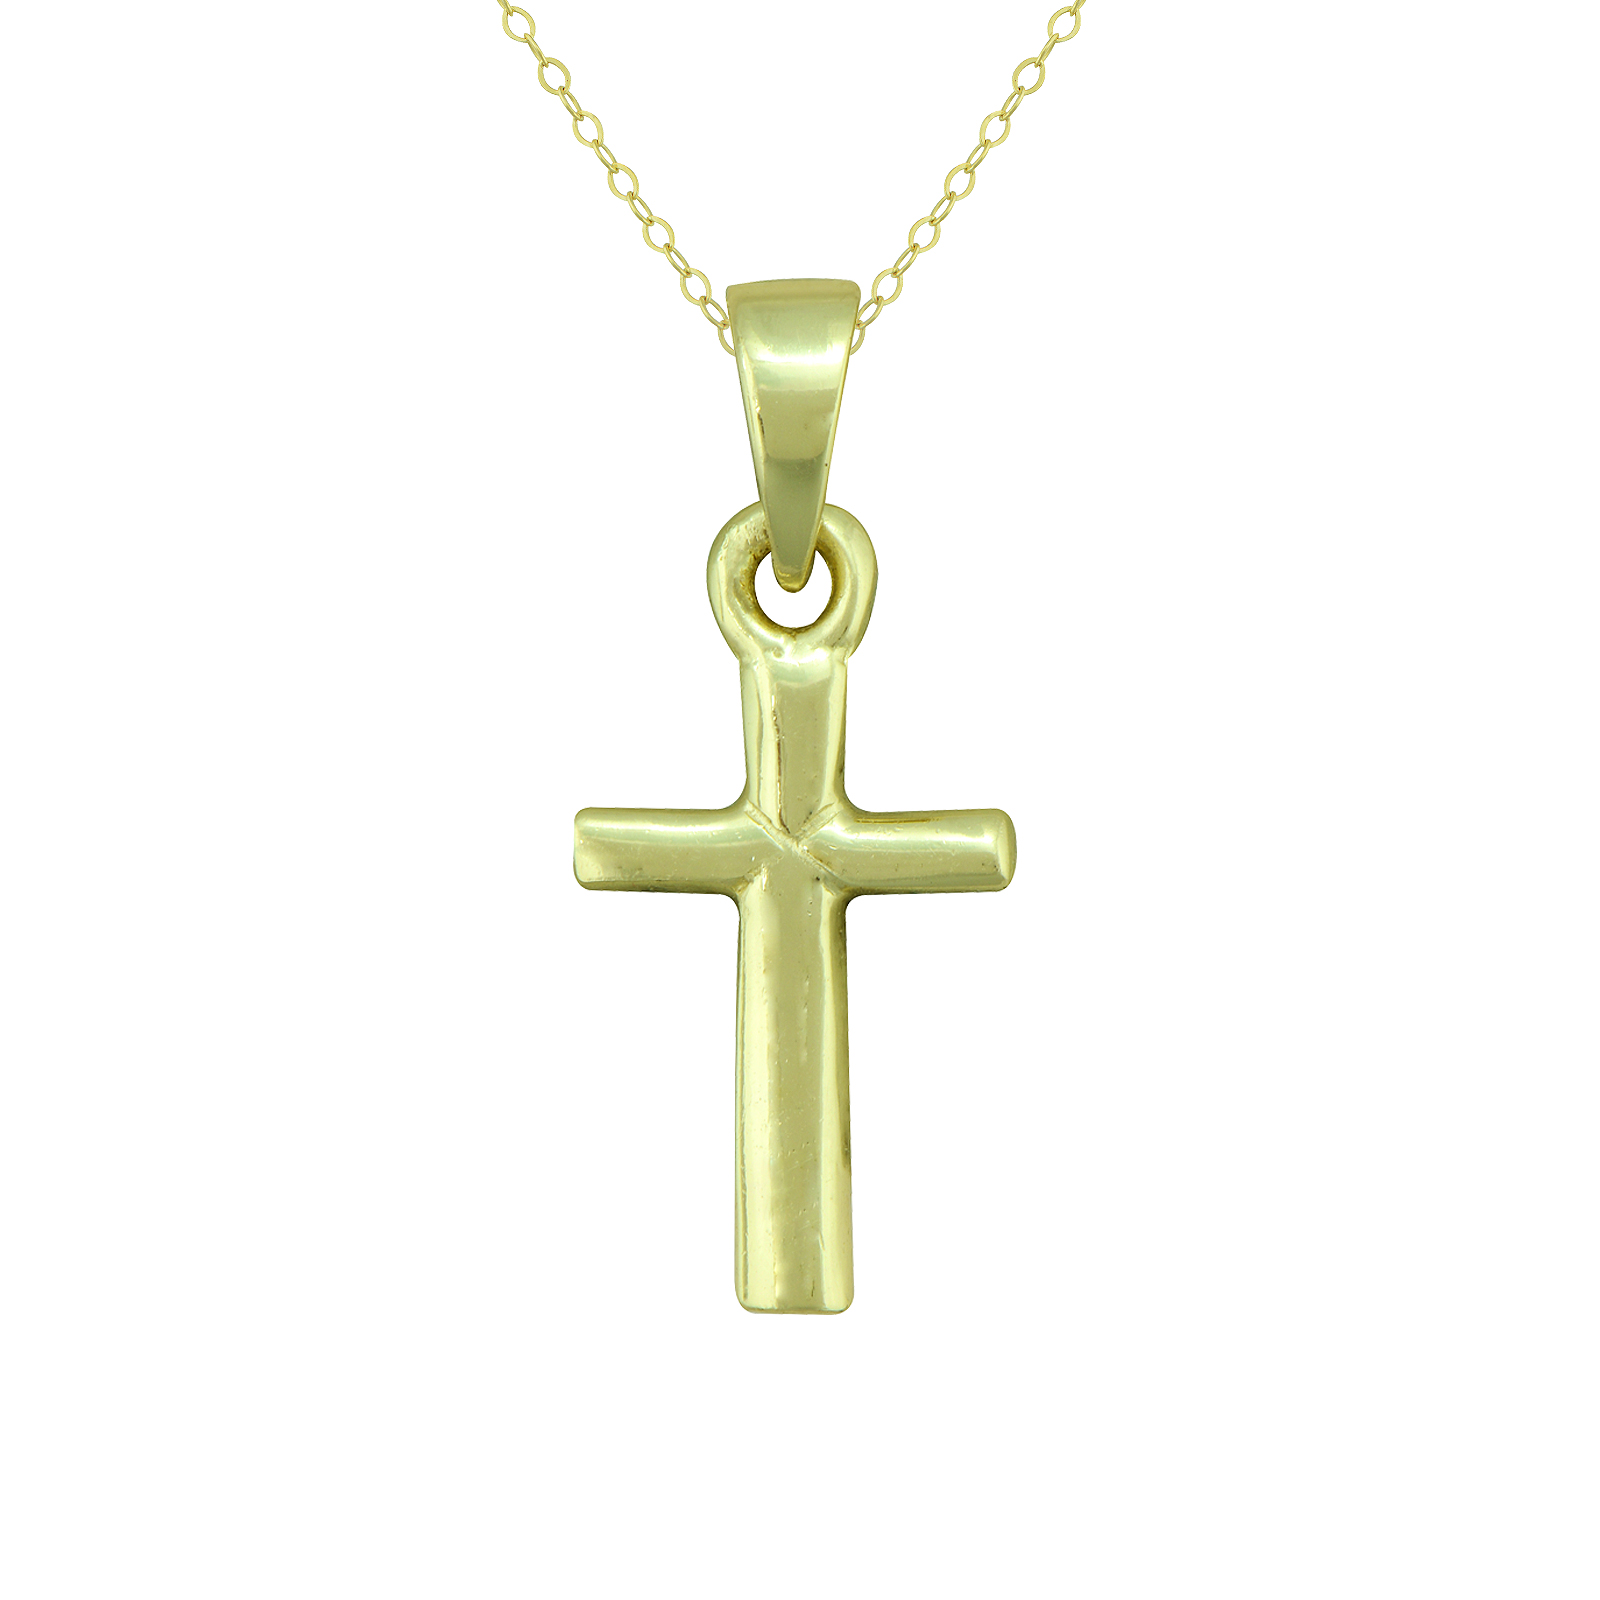 Gold over Silver Cross Pendant with 15